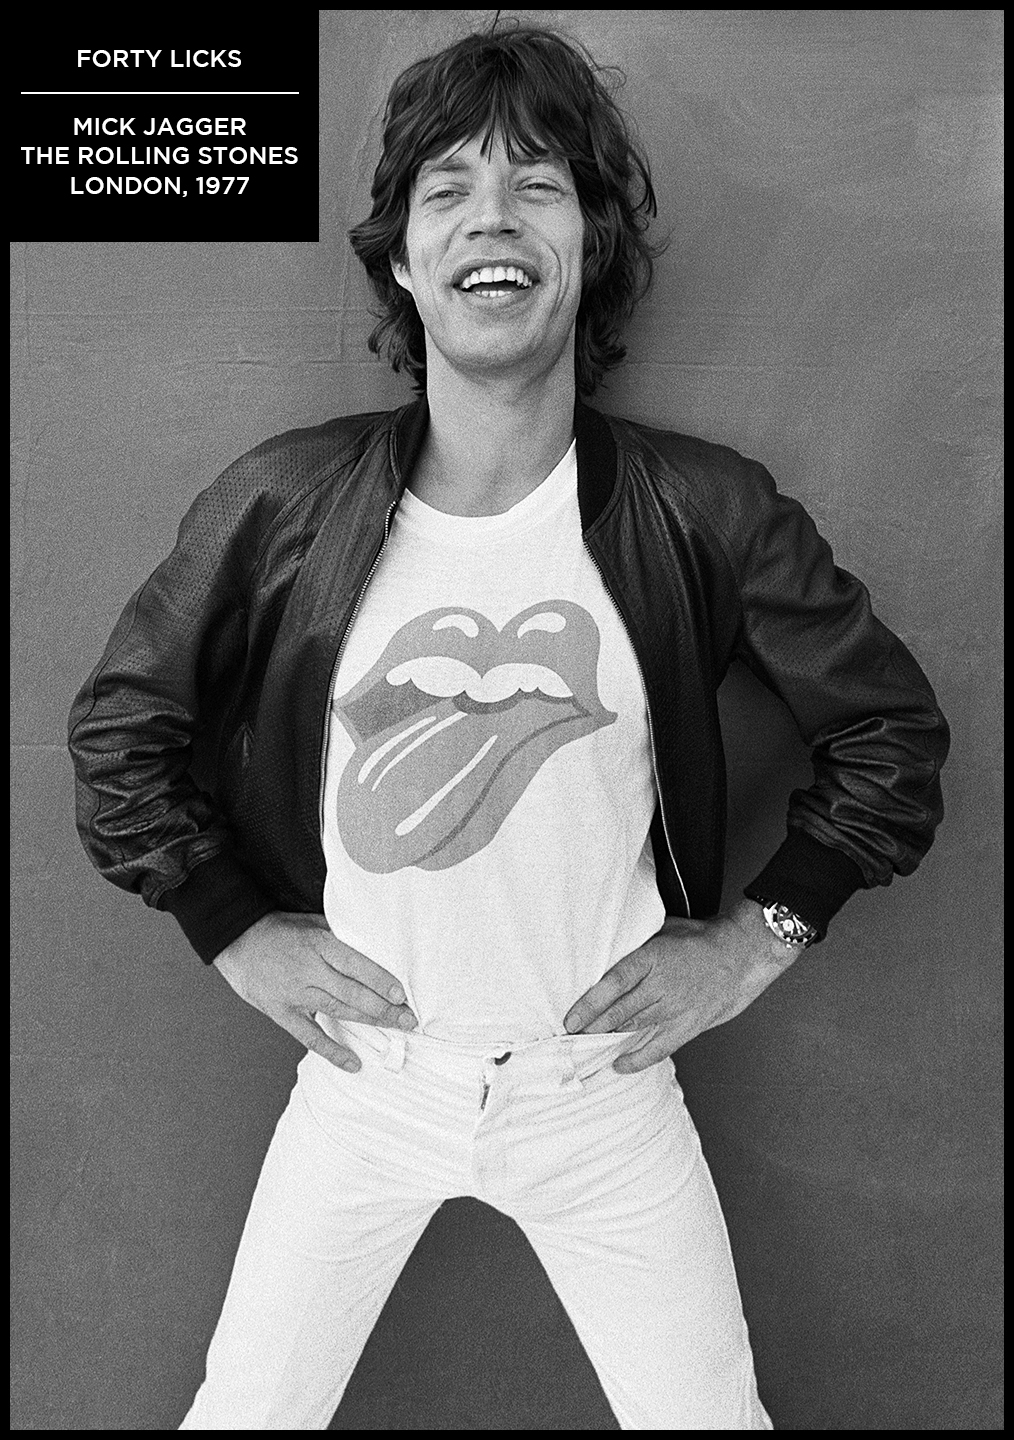 rare black and white photograph mick jagger forty licks the rolling stones